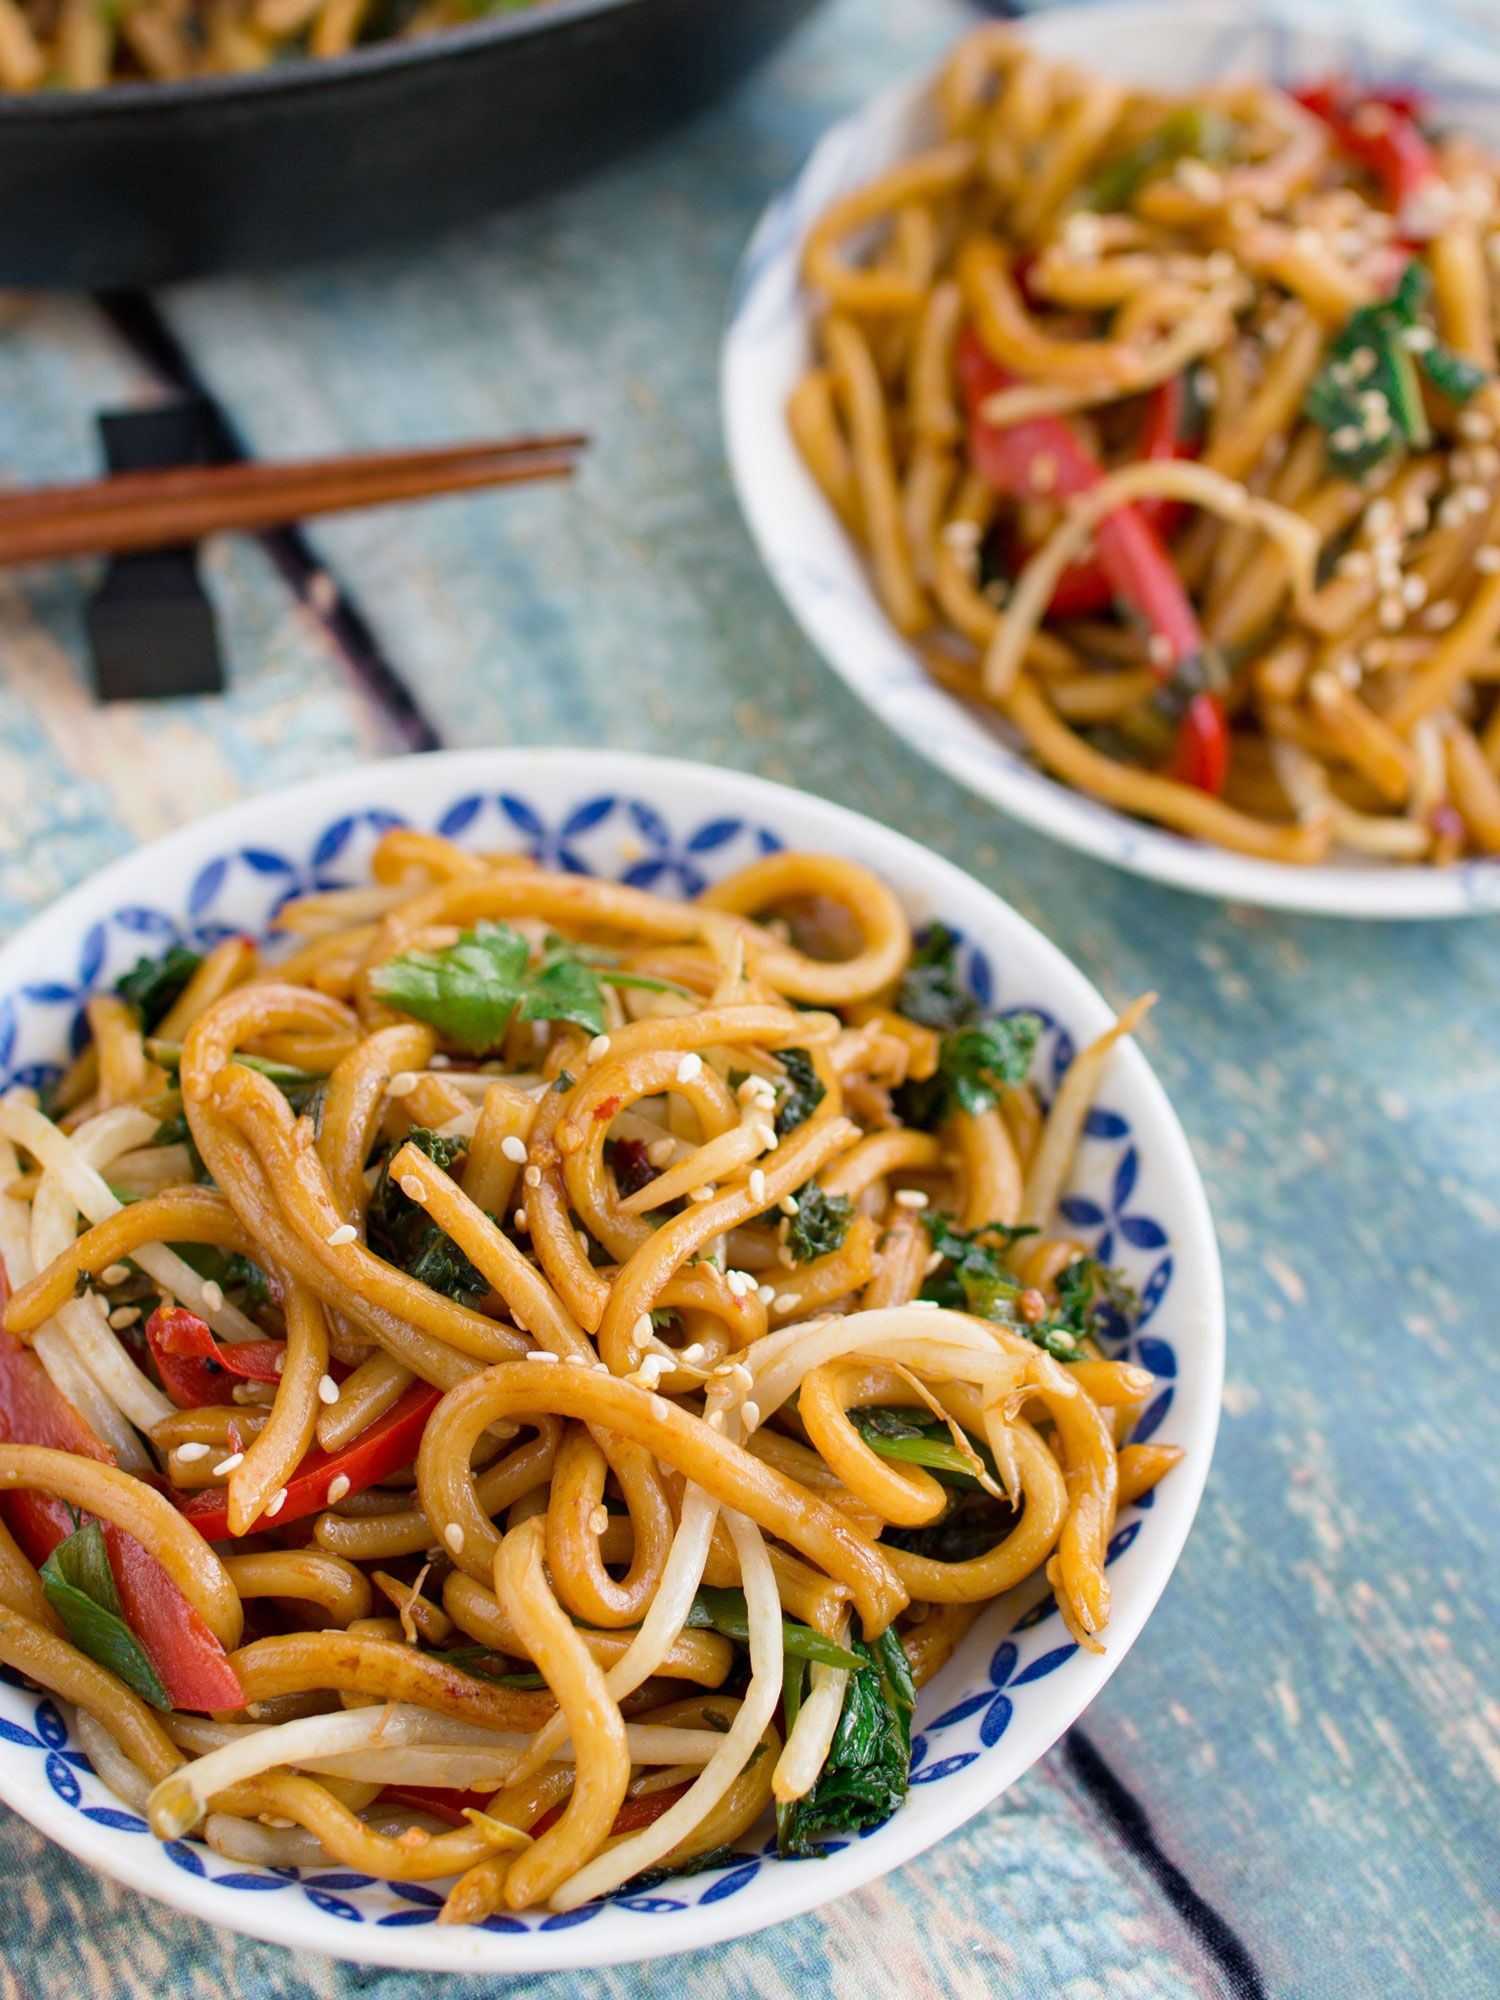 Udon Stir Fry with Vegetables